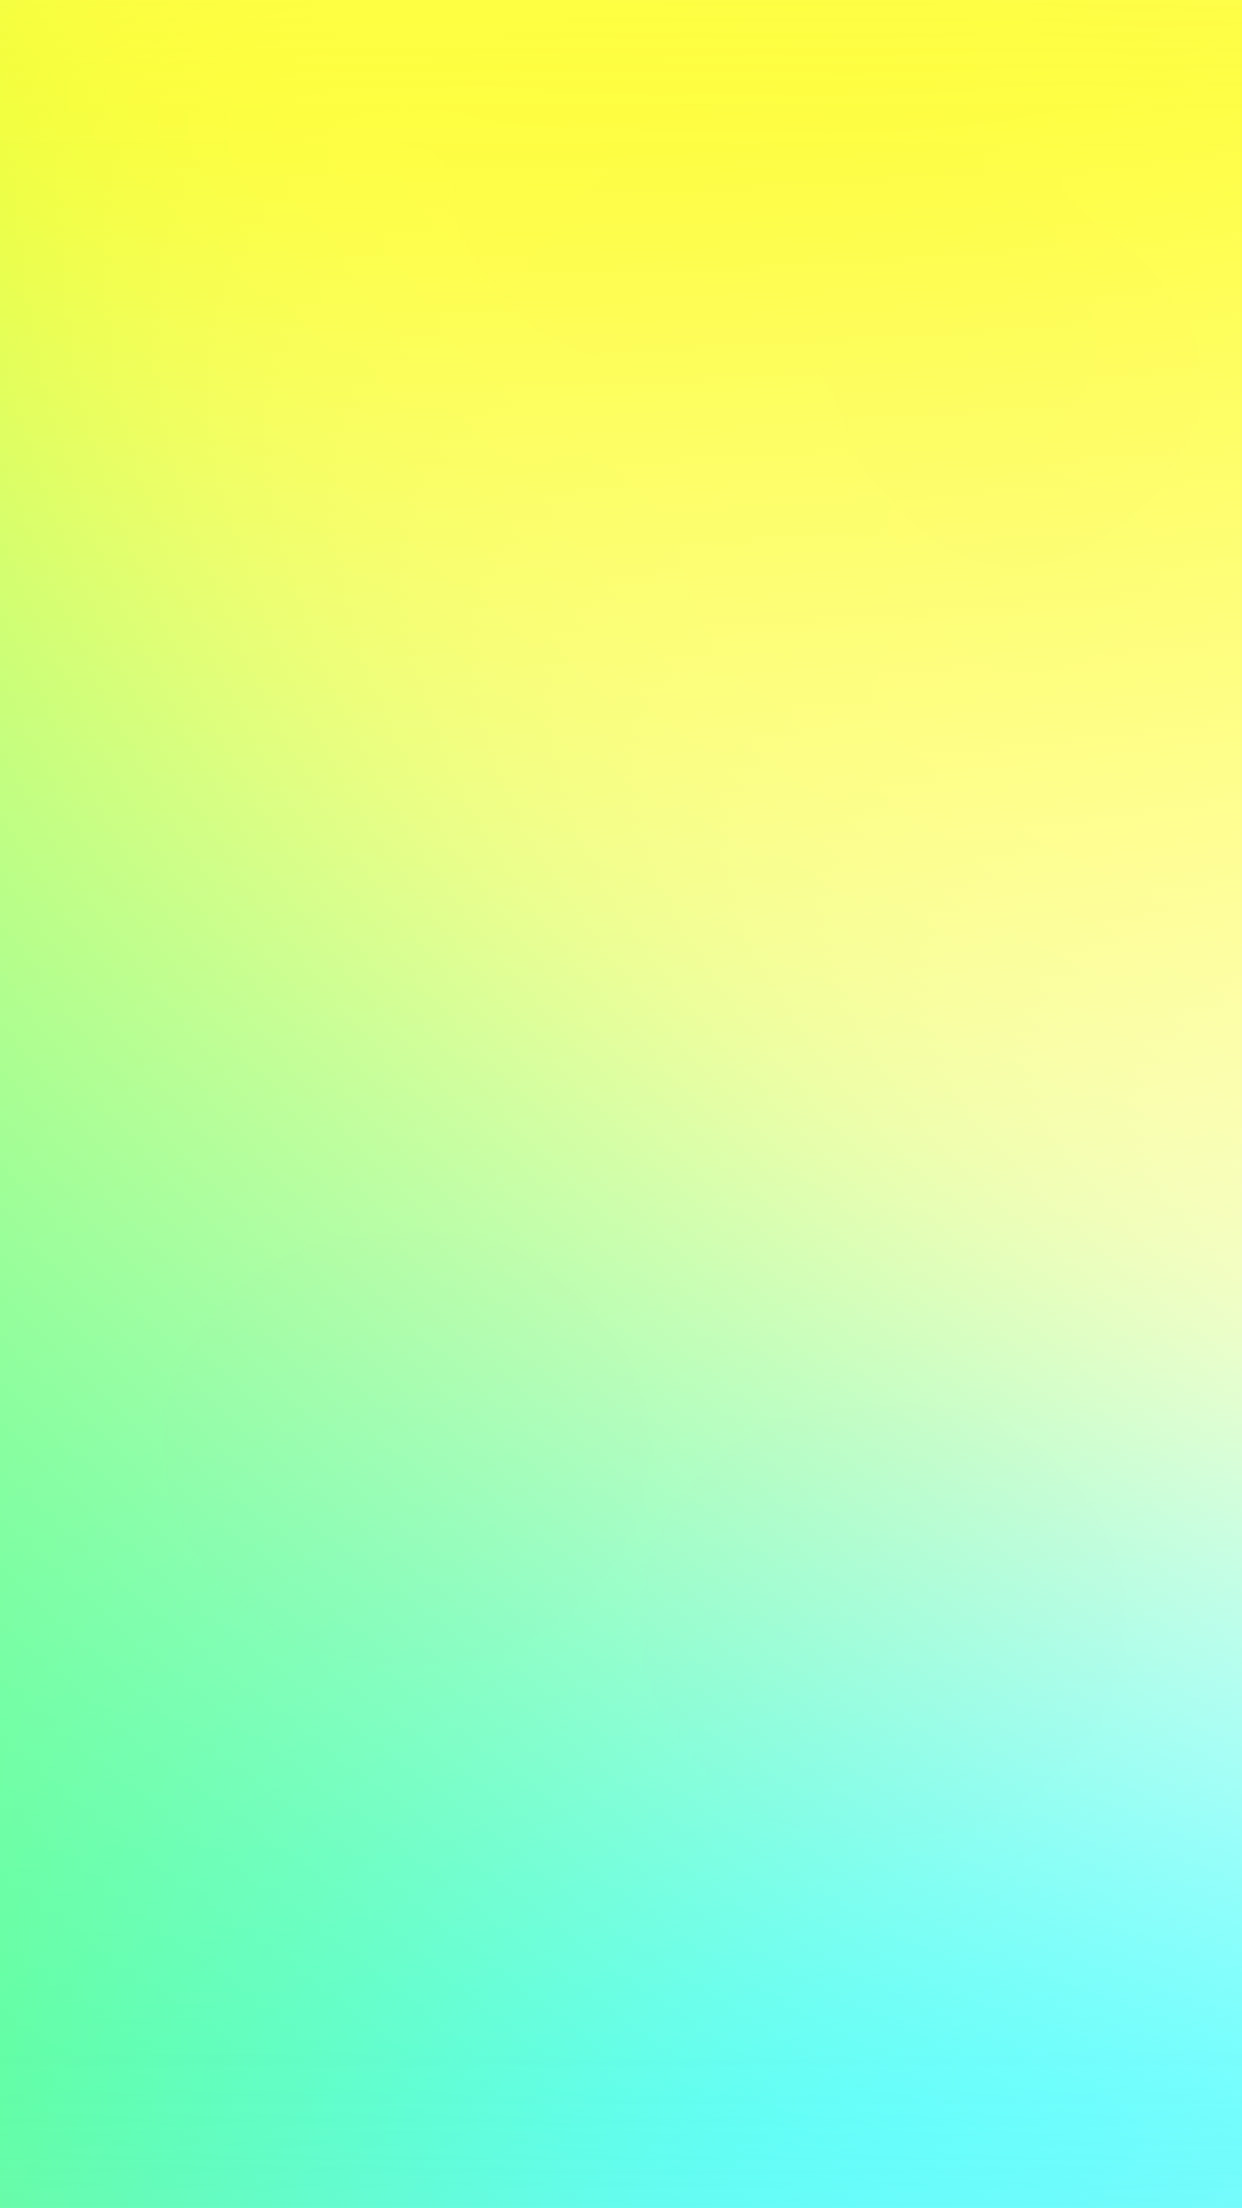 sg85-bright-yellow-neon-green-sunny-gradation-blur - Papers.co